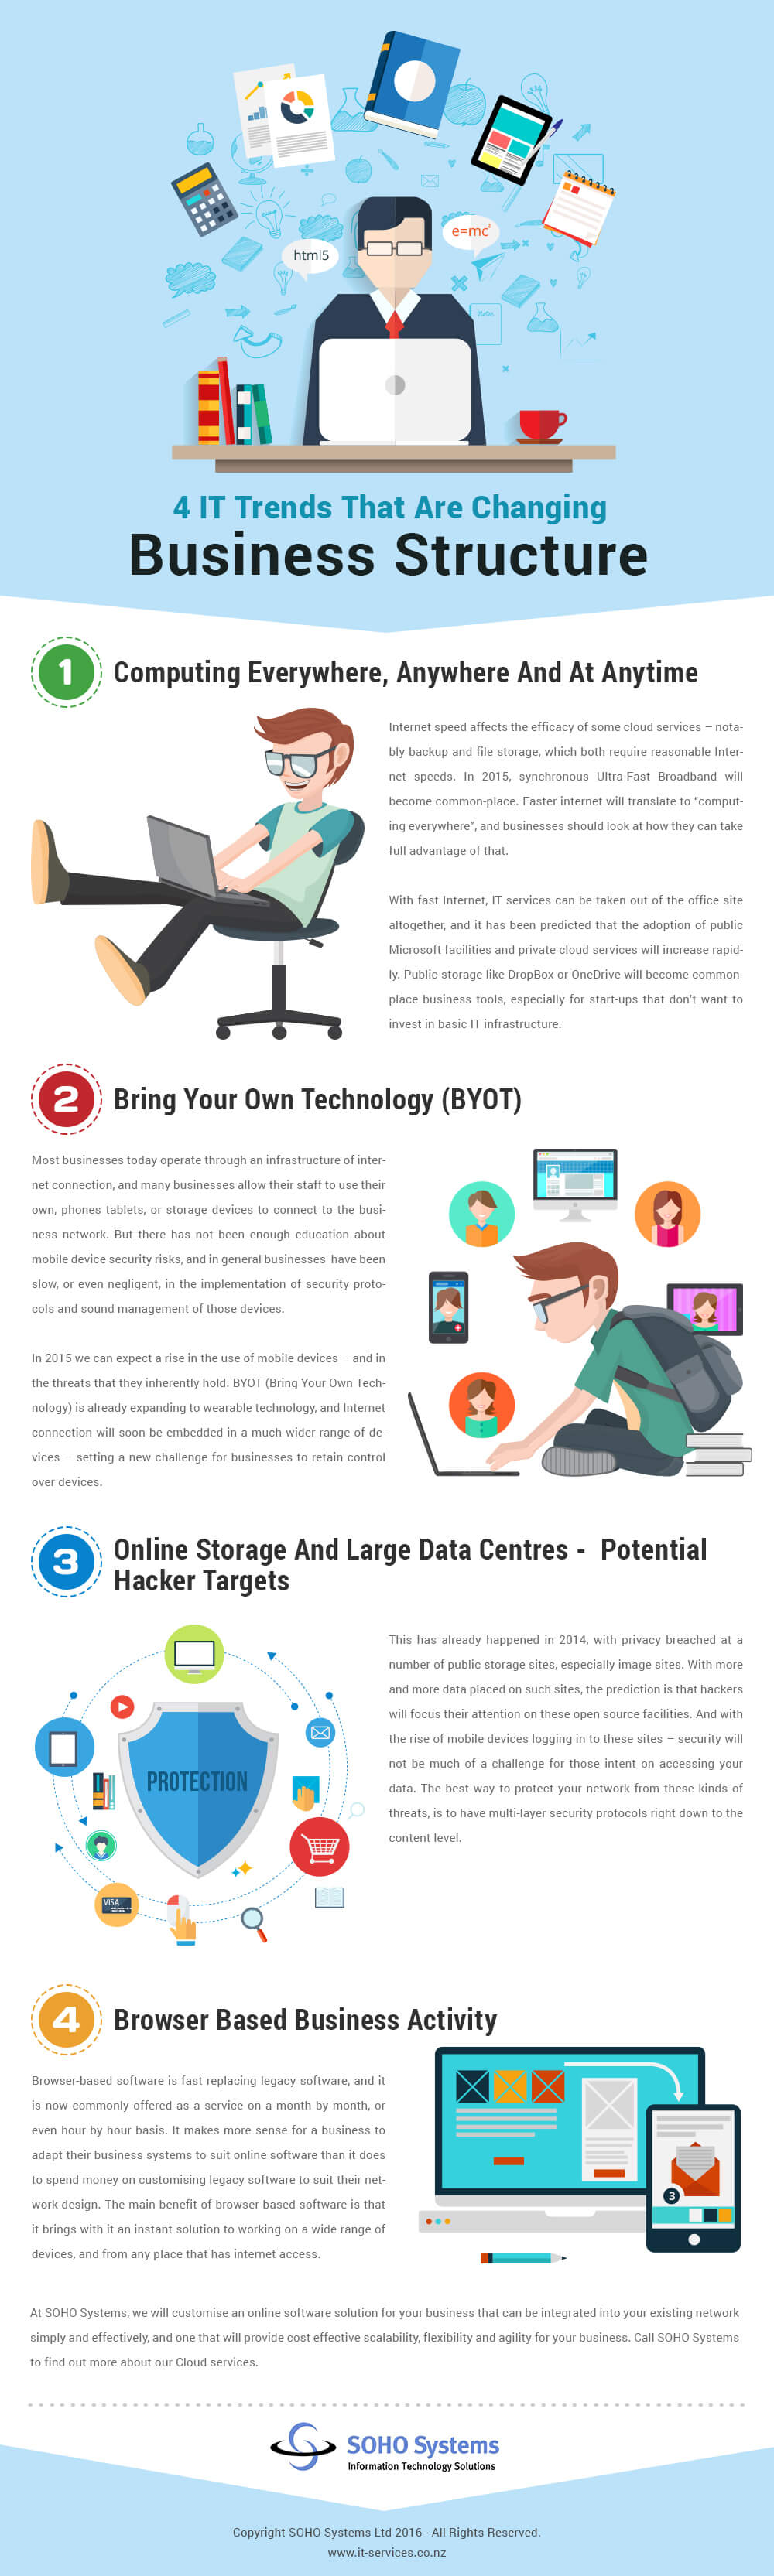 IT-trends-changing-business-structure-infographic-plaza